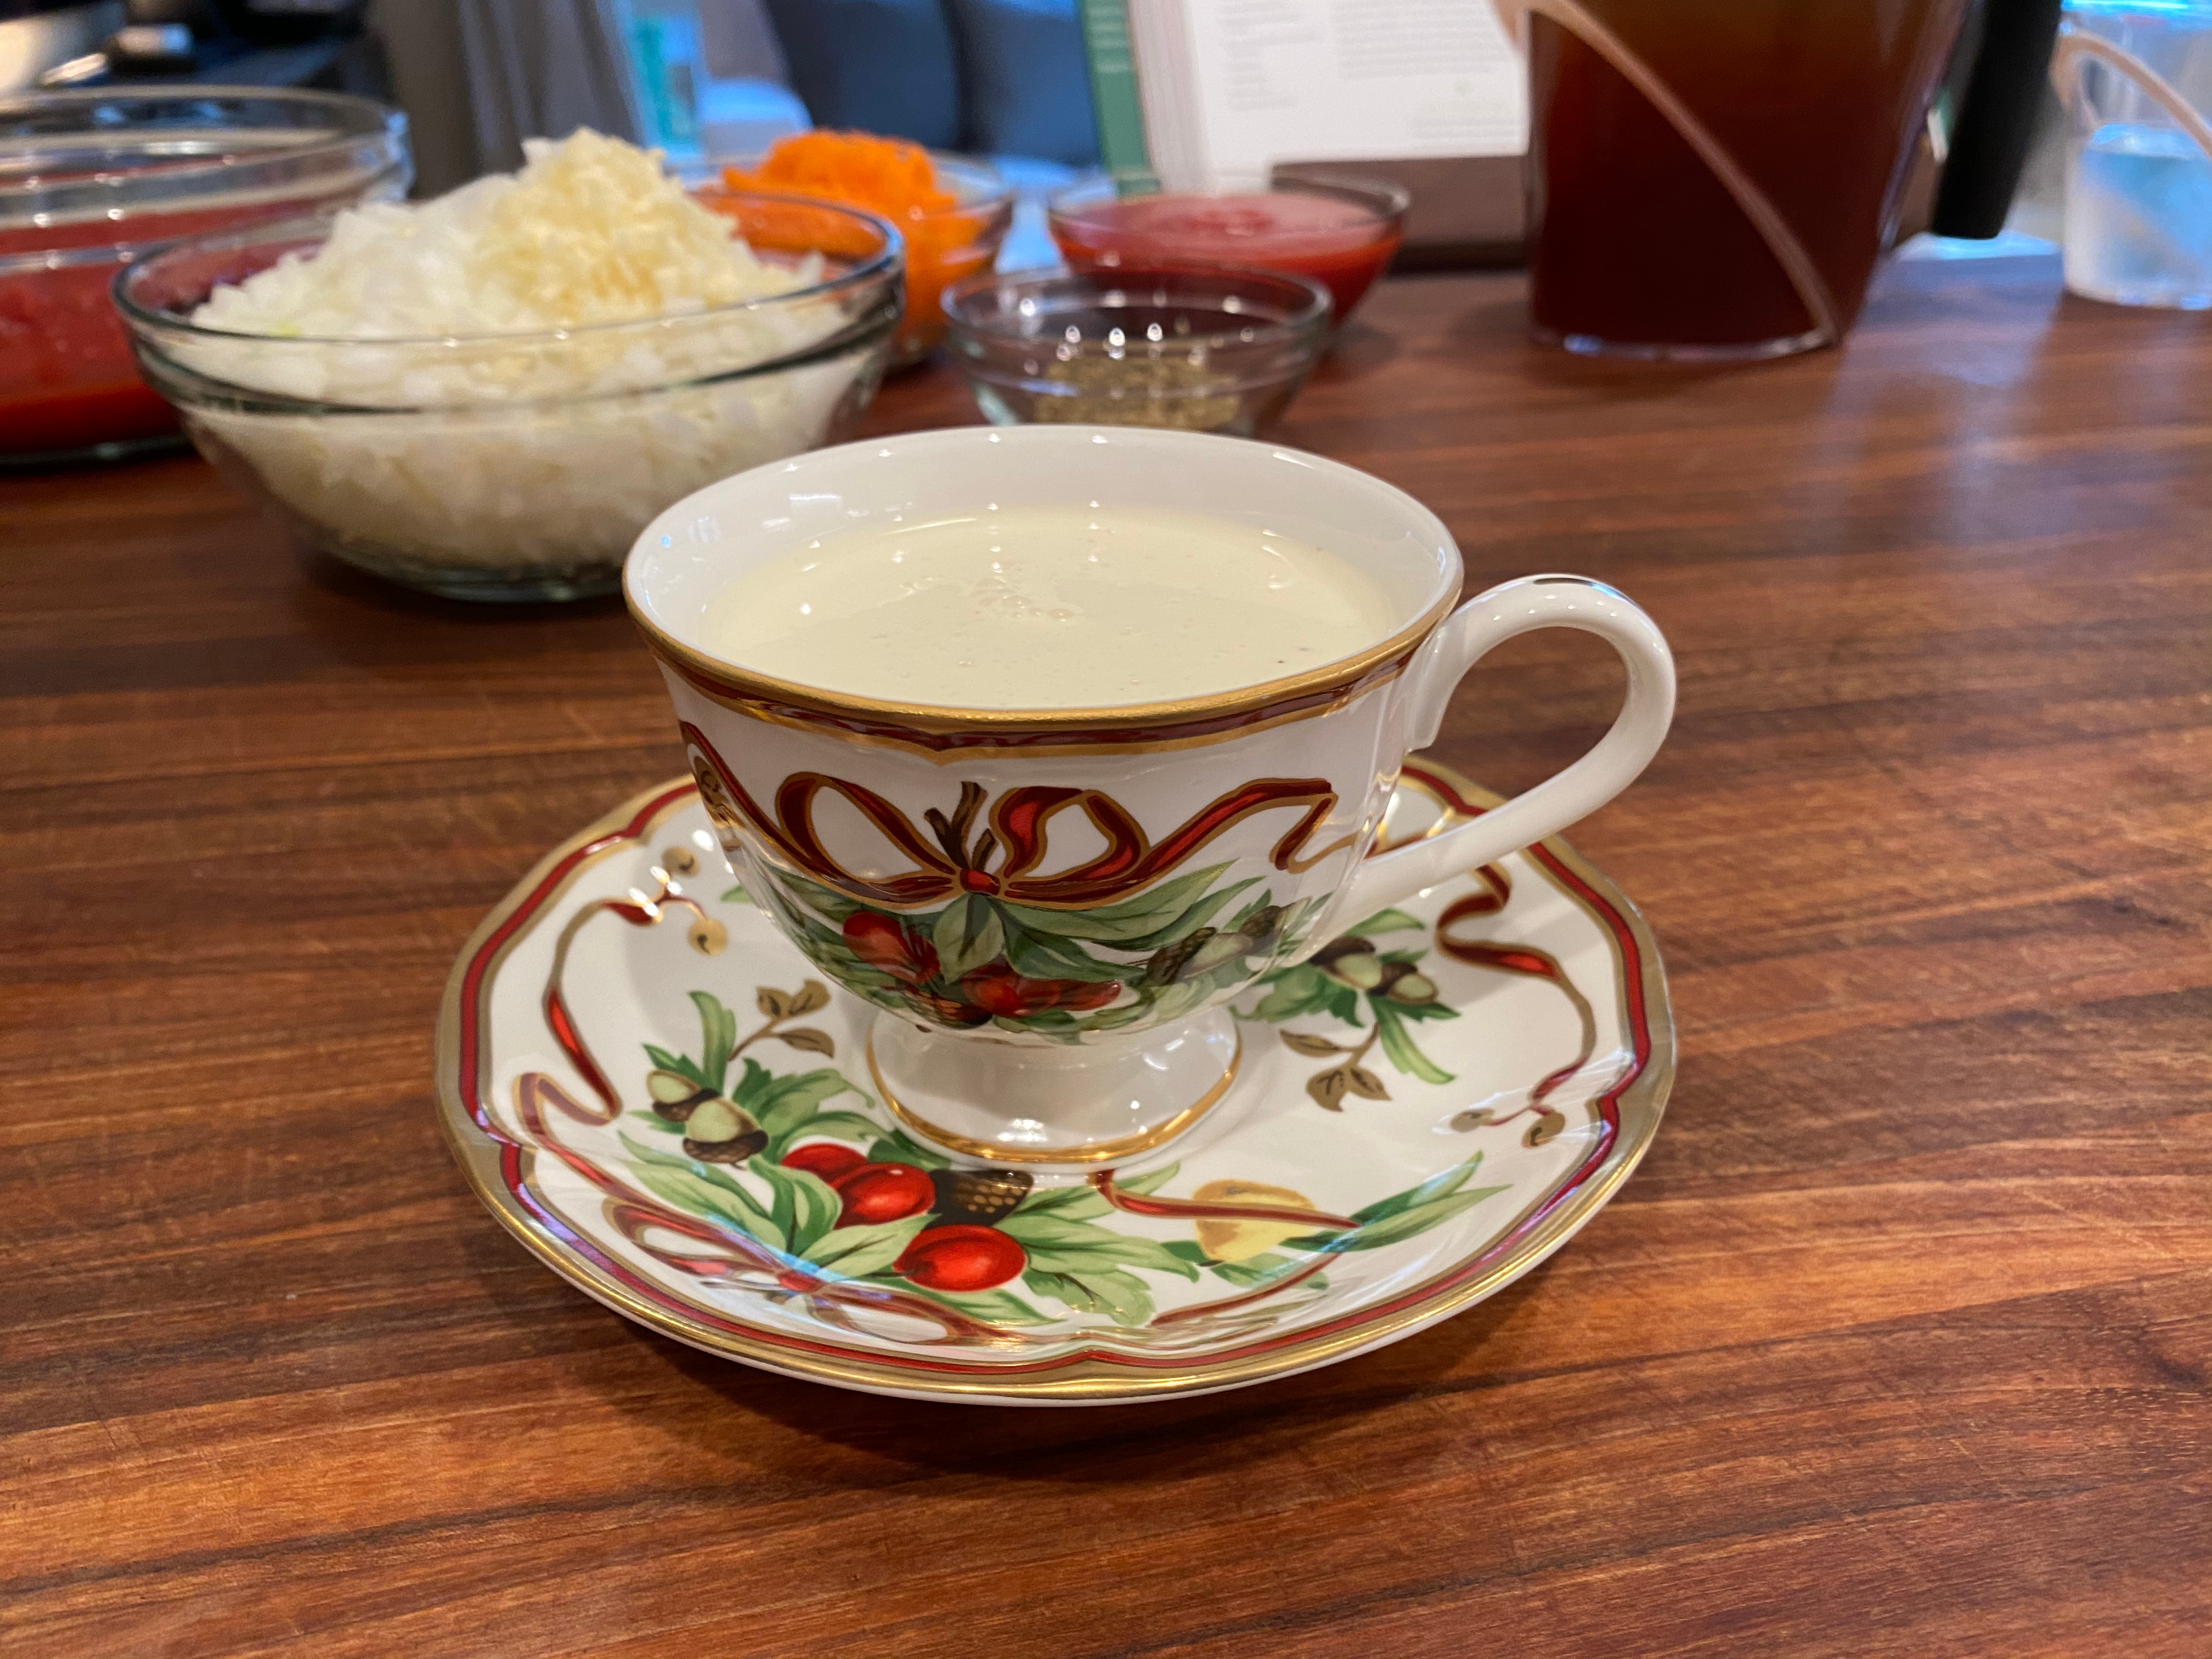 Drinking Eggnog While Cooking